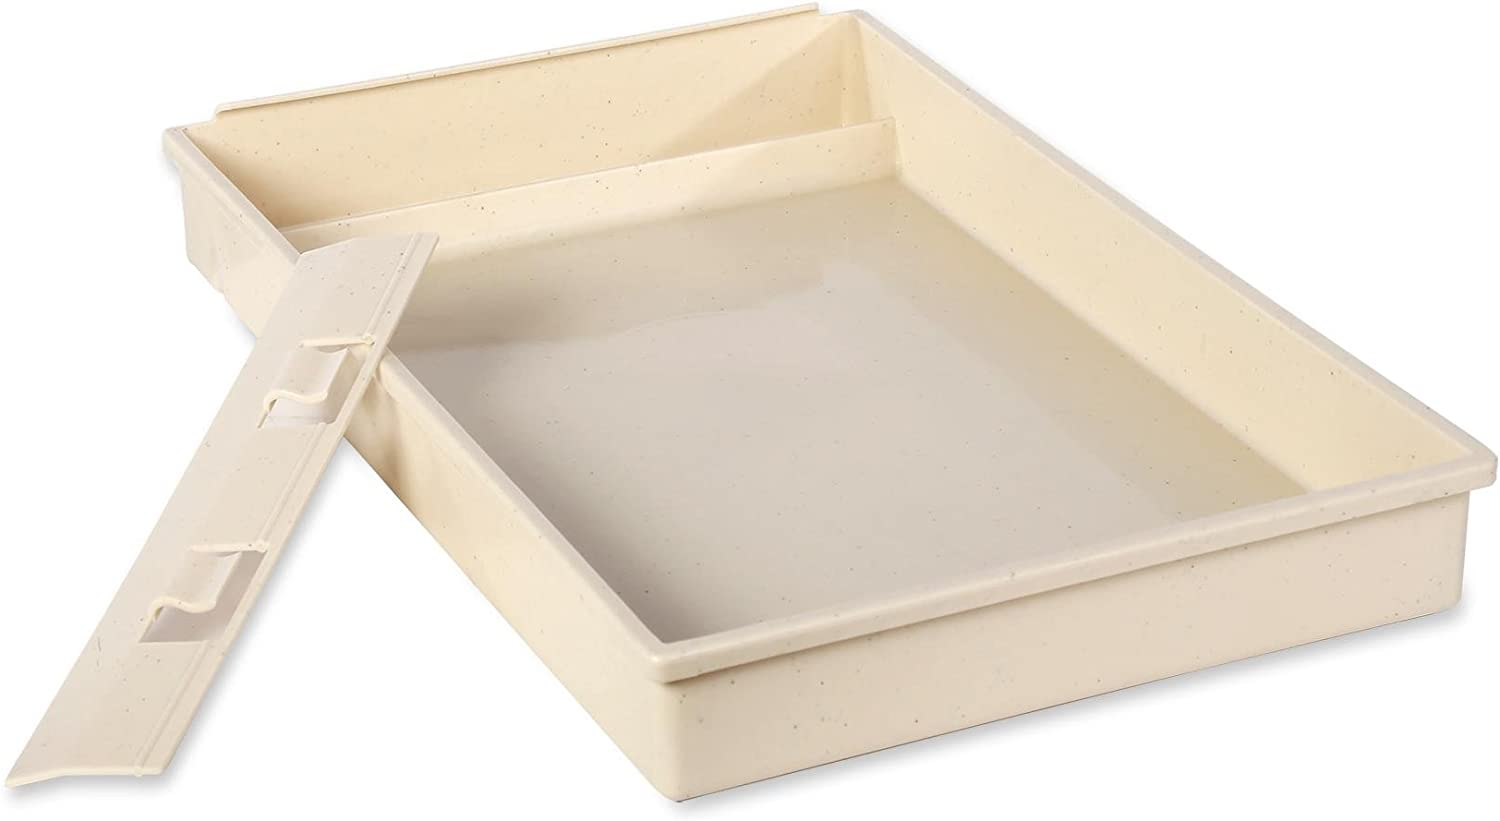 Forever Litter Trays. The Original Reusable Replacement for ScoopFree Refills. Ultimate Quality, Design and Durability Since 2005.